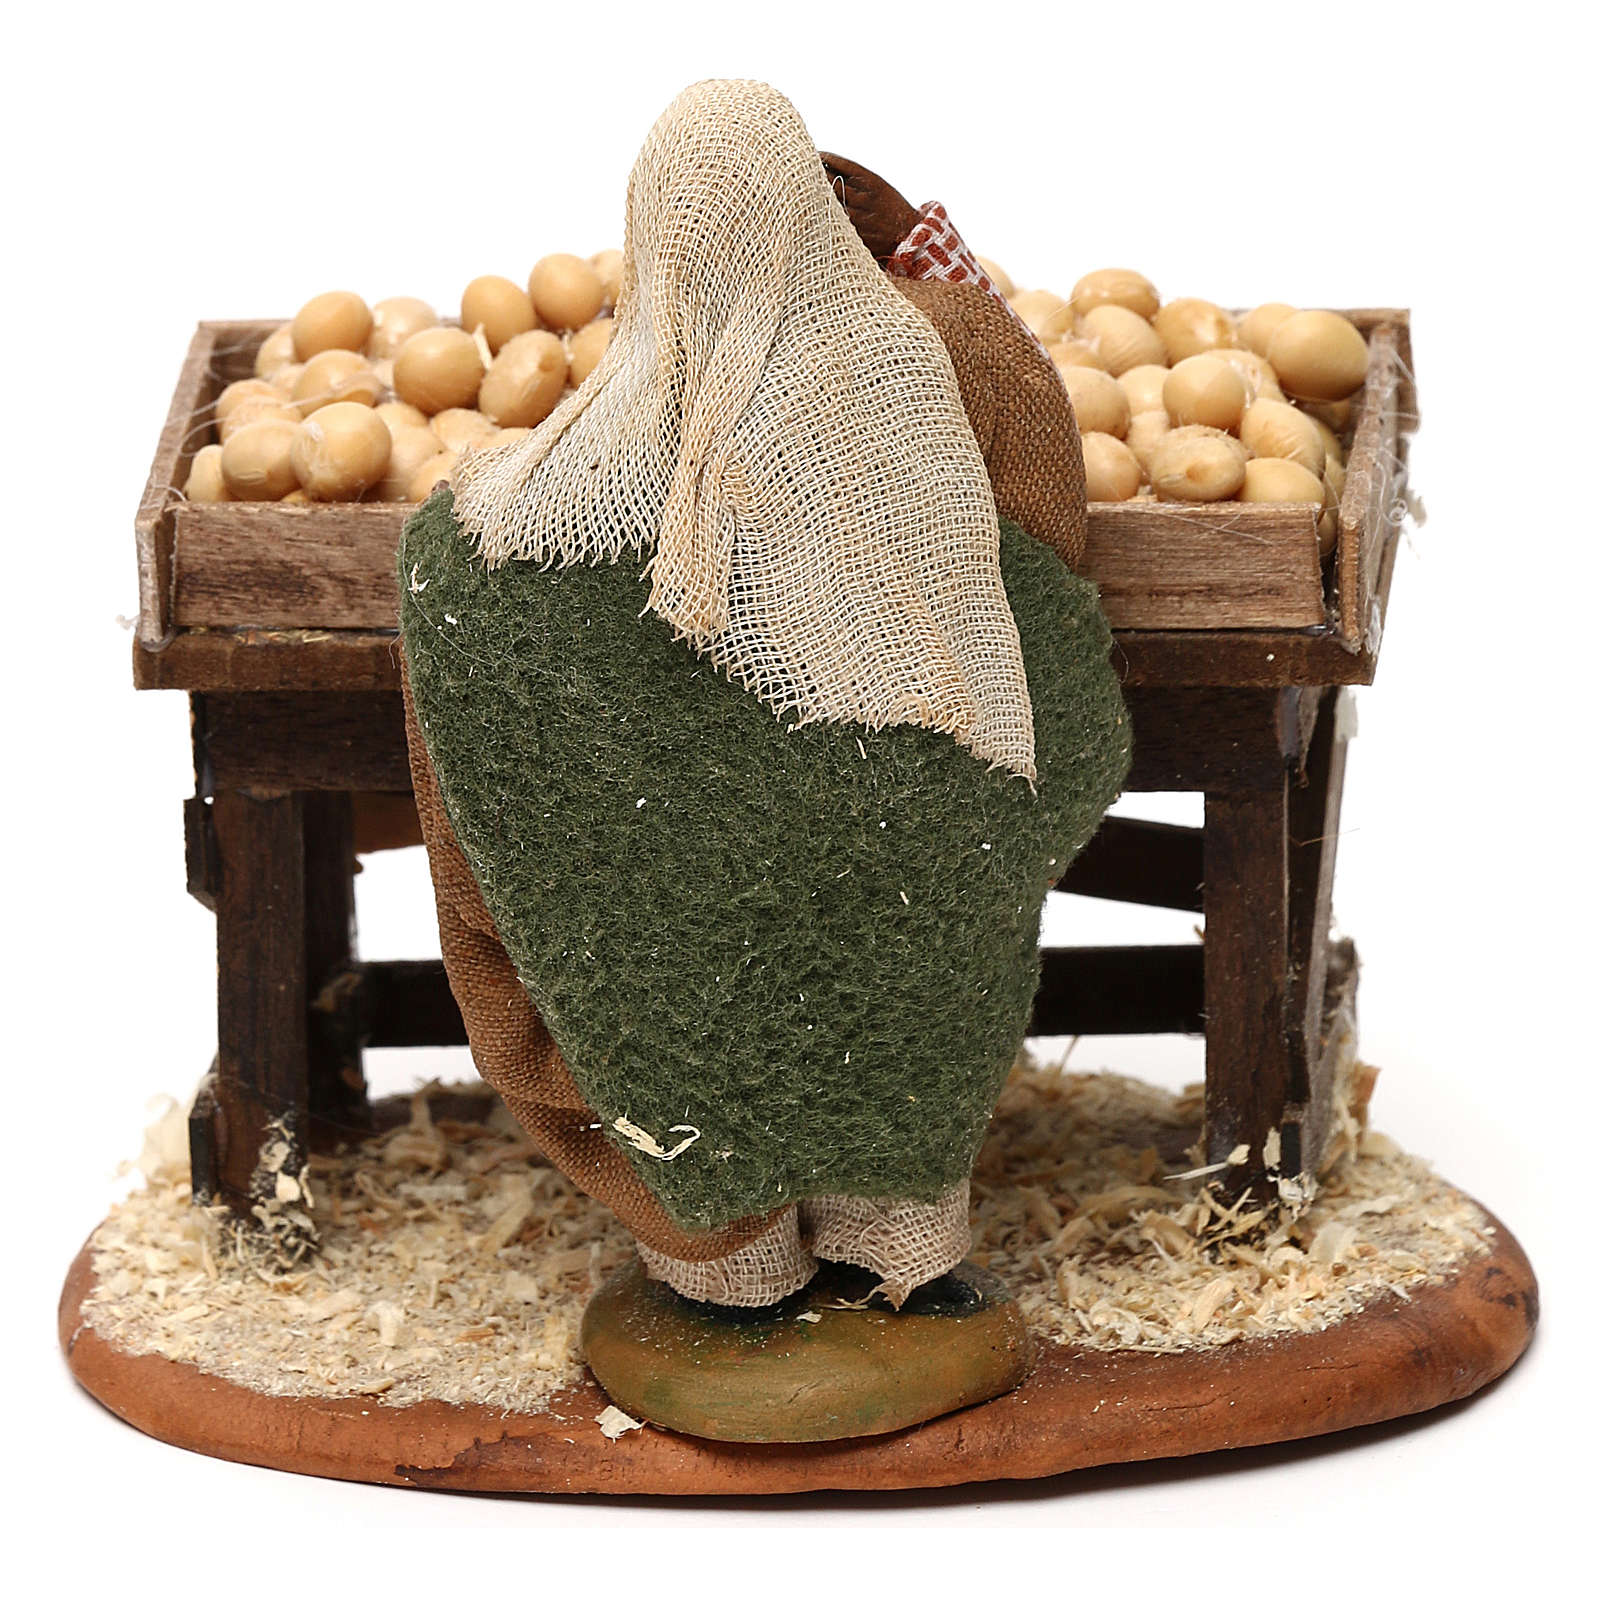 Egg seller with stall, Neapolitan Nativity 10cm 4